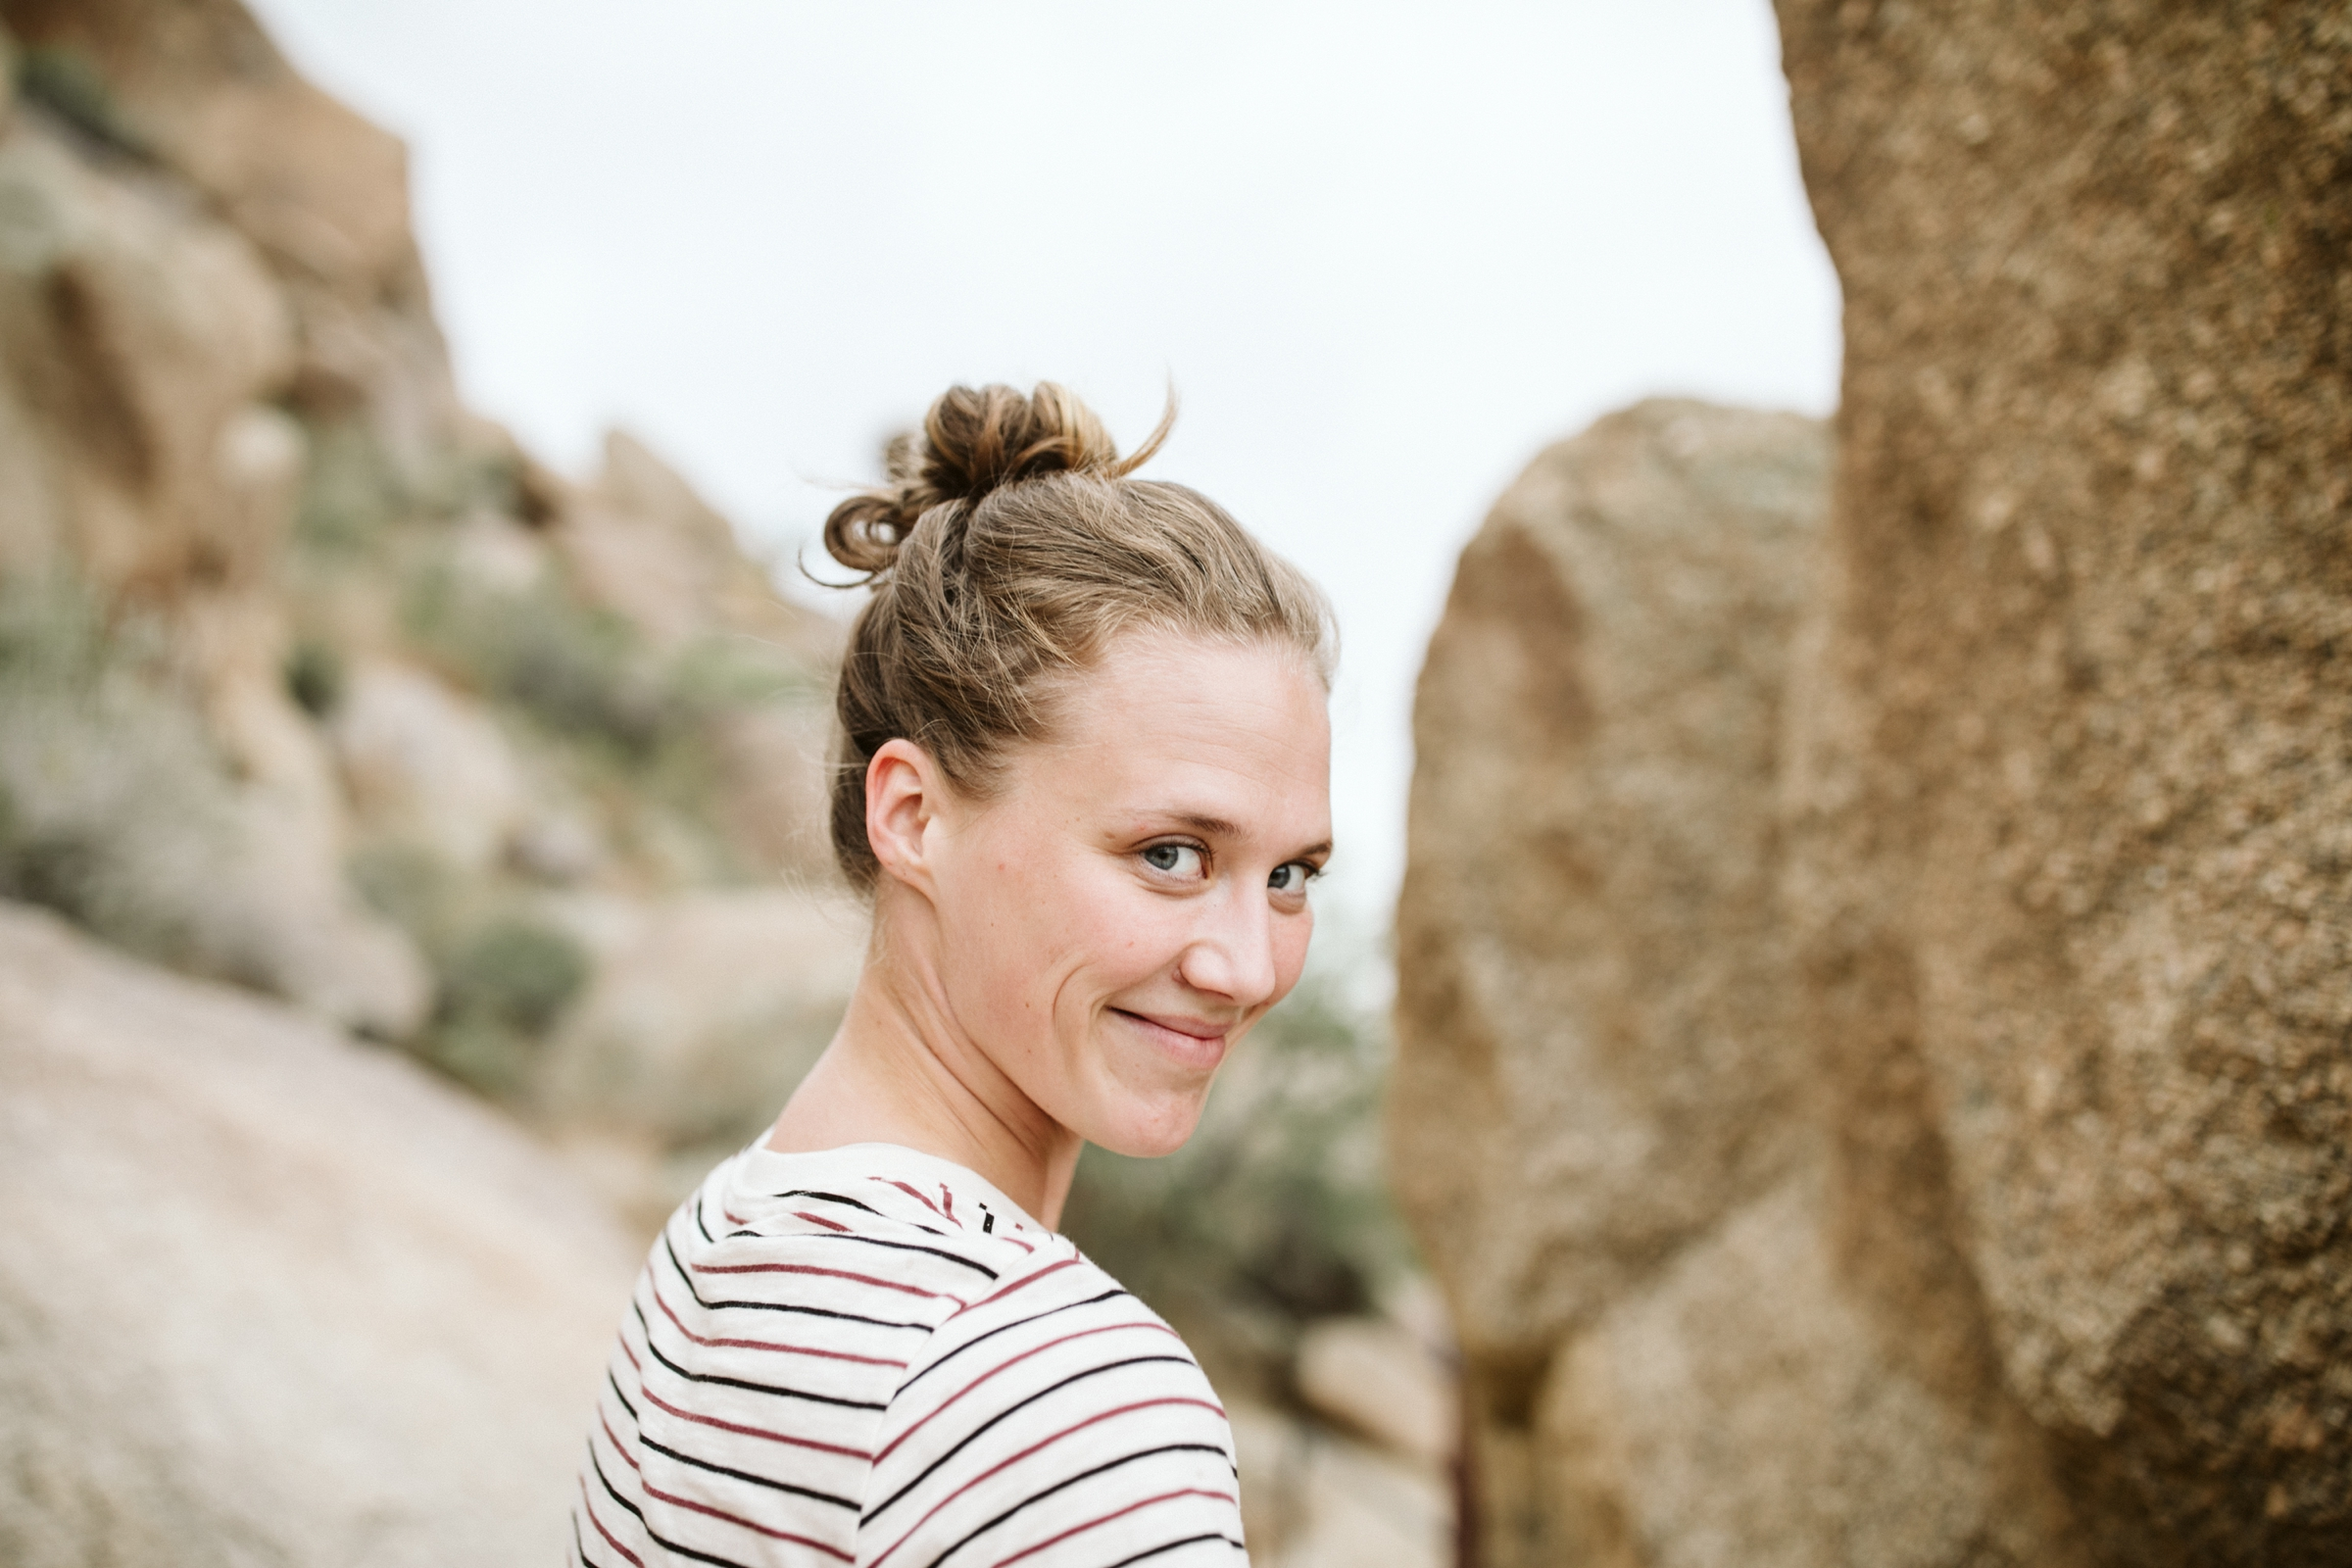 catie-bergman-arizona-southwest-hipster-seattlefamily-seattle-family-pnw-first-birthday-lifestylephotography-catie-bergman-photography-elopement-landscape-travel-wedding-pnw-portrait-lifestylephotography-vsco-northwest-friends-love_0009.jpg